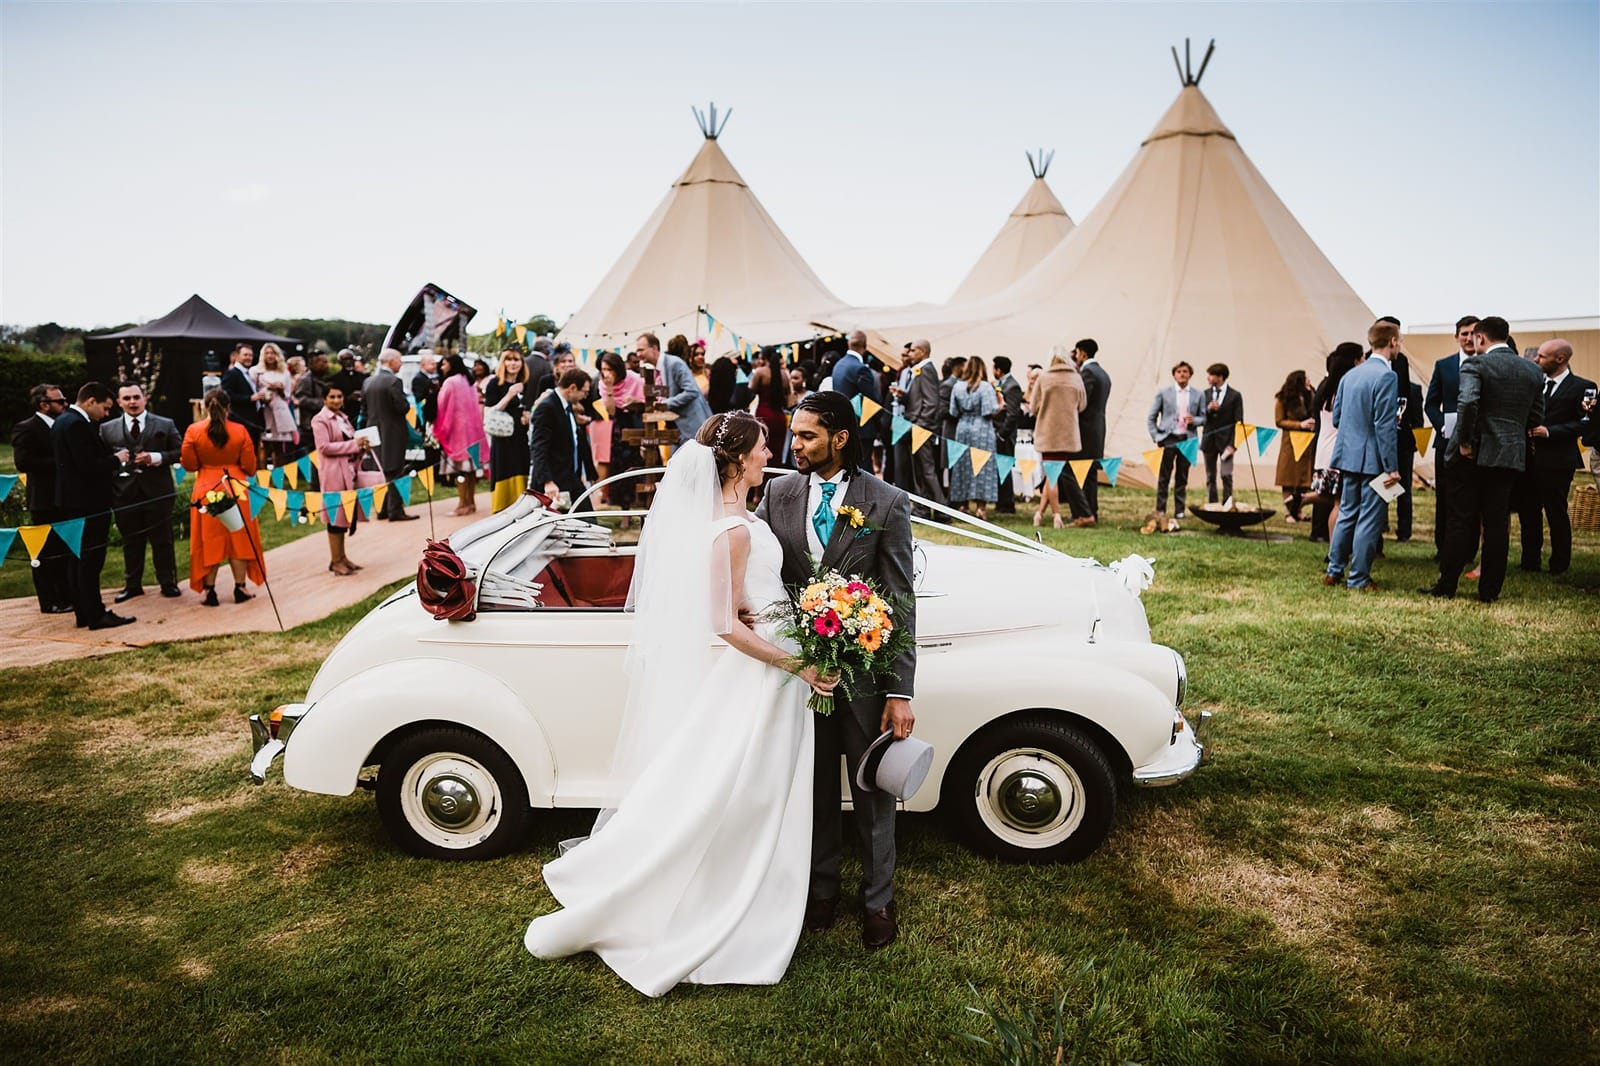 a big tipi garden wedding in Cornwall